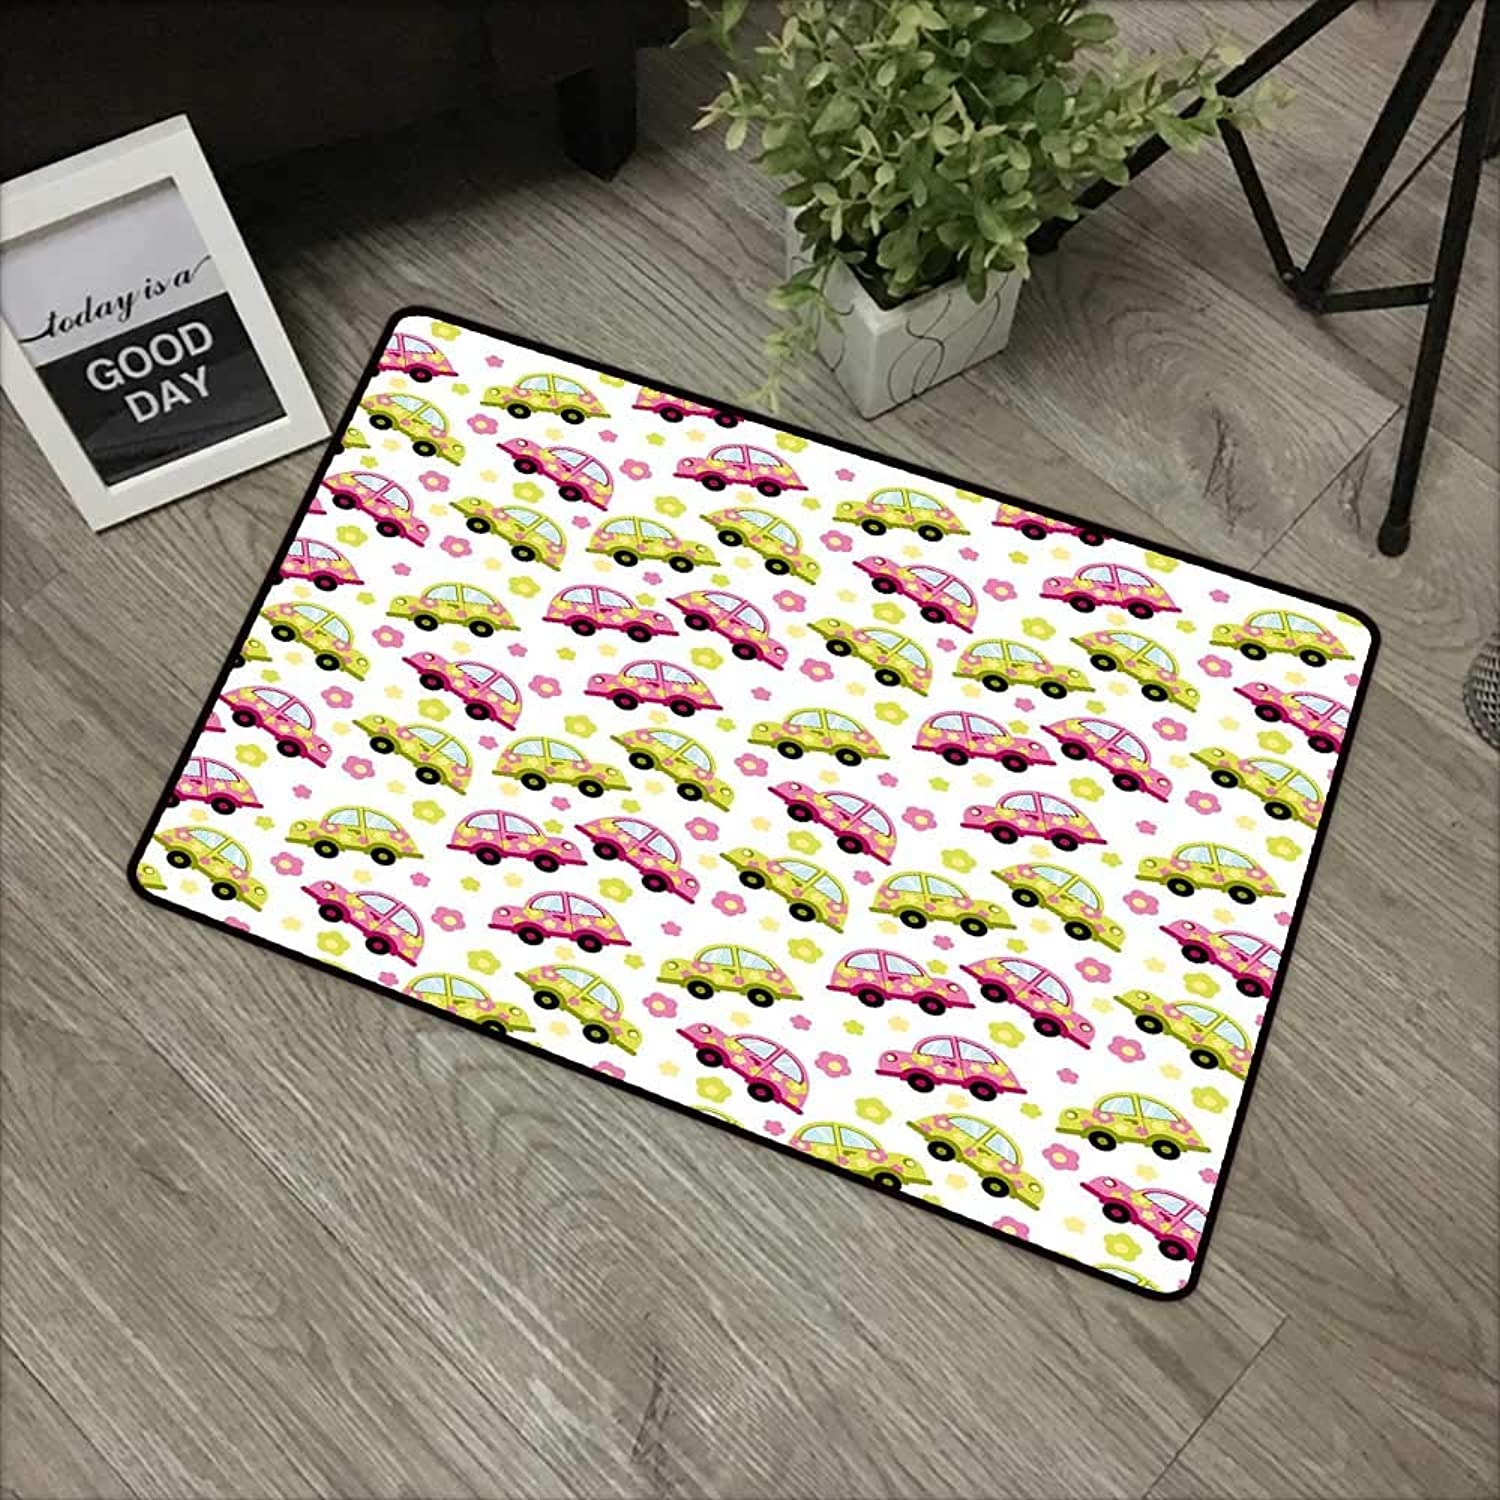 Bathroom Door mat W31 x L47 INCH Cars,Hippie Vintage Cars in Pink and Green color with Little Spring Daisies,Pink Apple Green Baby bluee Non-Slip Door Mat Carpet